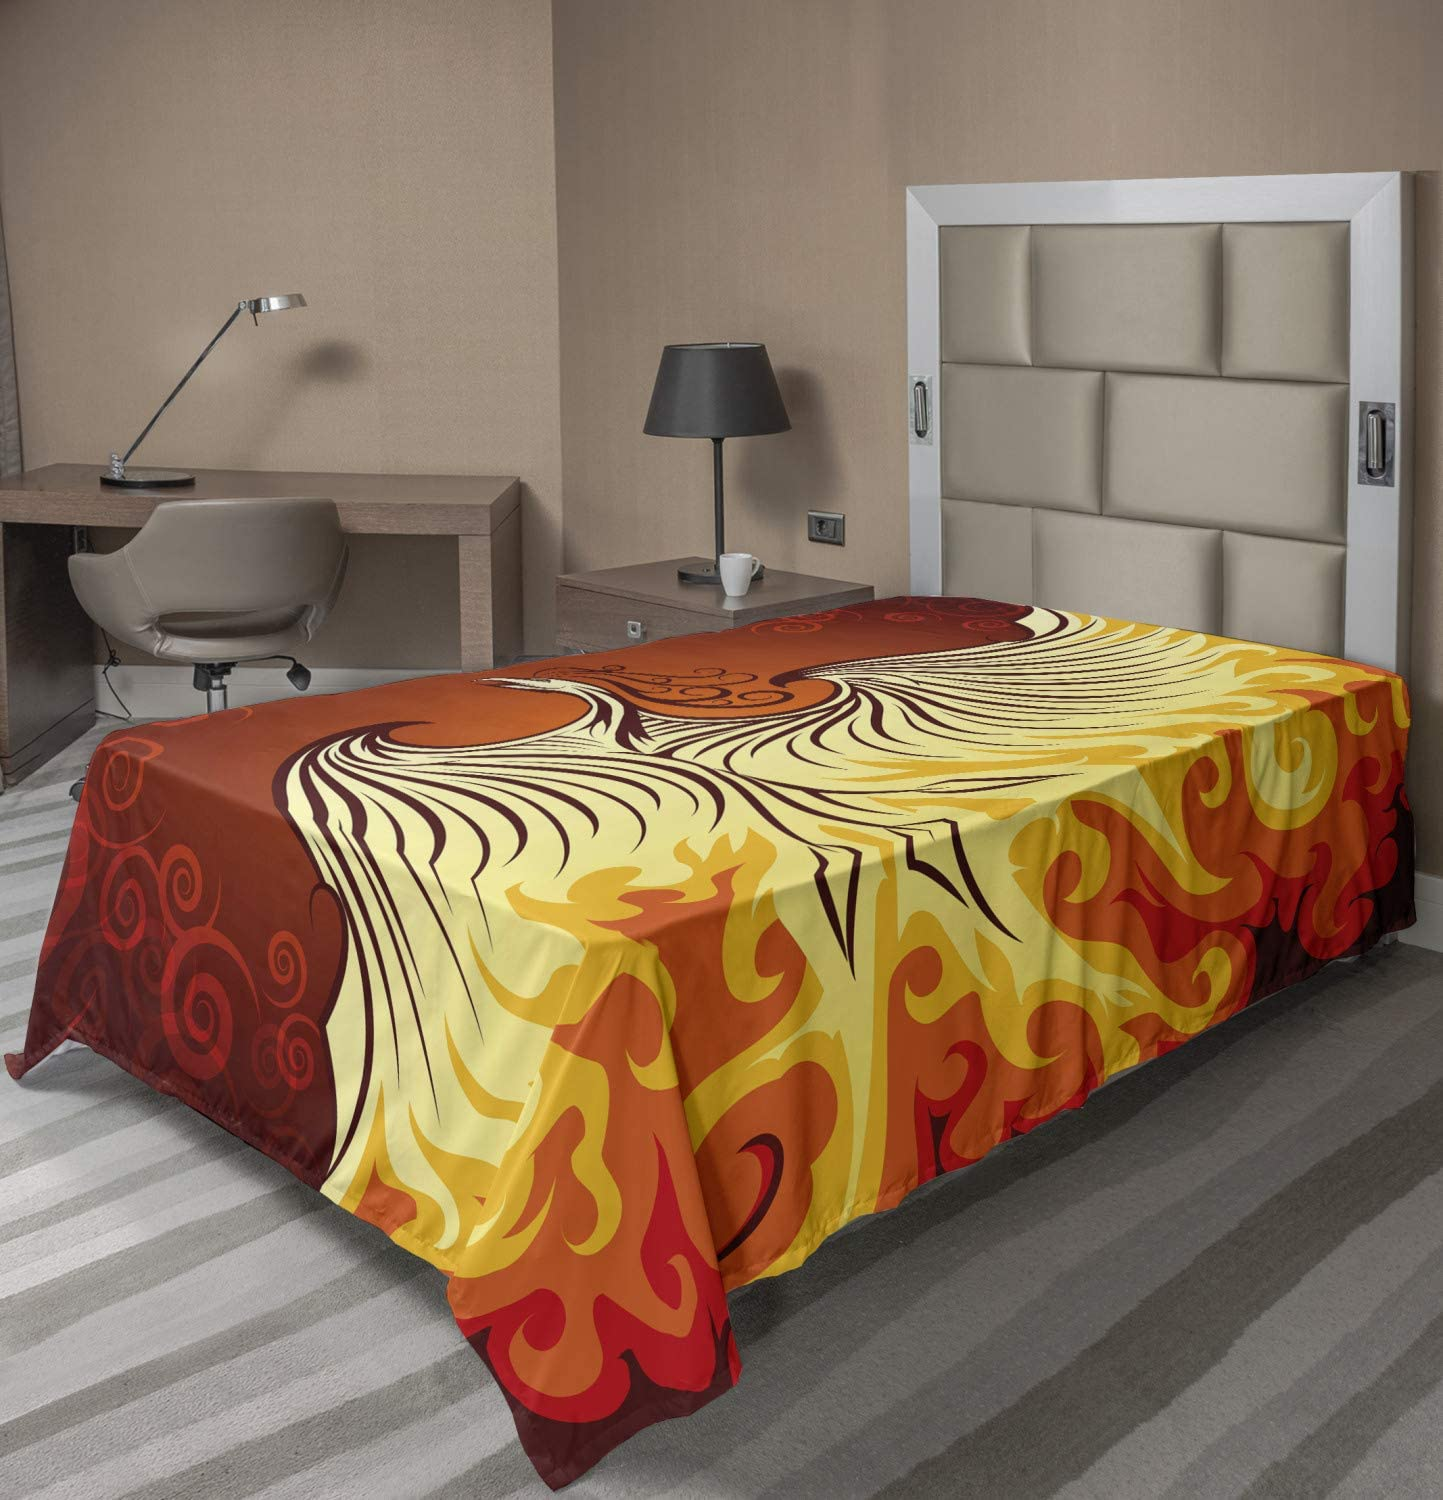 Illustration of Flying Phoenix Bird in The Burning Flame Mythical Creature Print Ambesonne Orange Flat Sheet Twin Size Orange Yellow Soft Comfortable Top Sheet Decorative Bedding 1 Piece